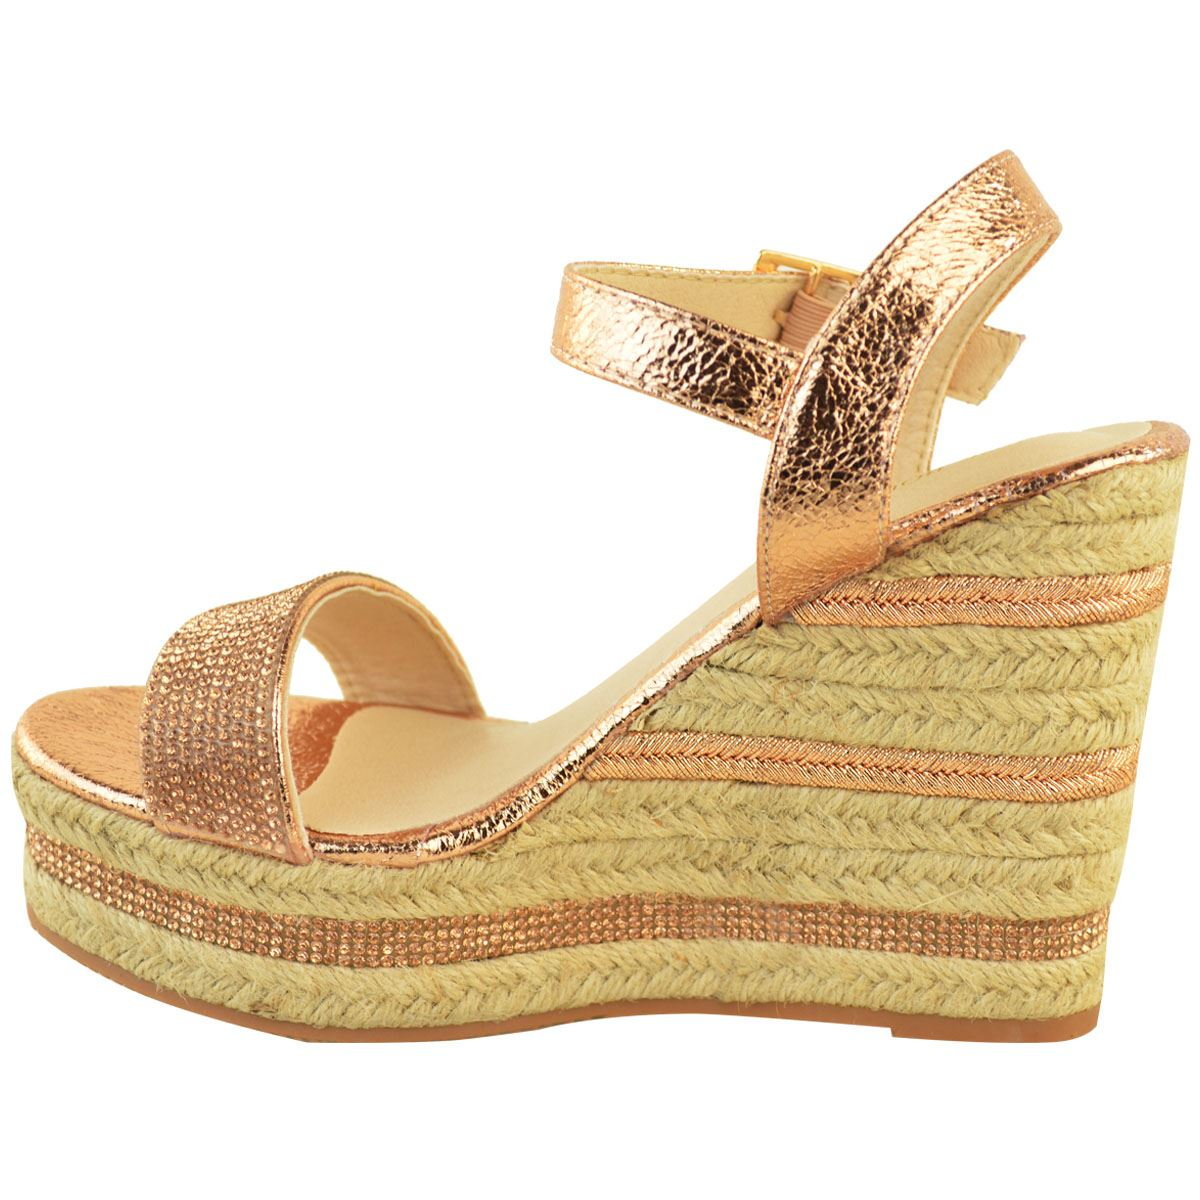 Womens-Ladies-Wedged-High-Heel-Sandals-Raffia-Diamante-Party-Shoes-Summer-Size thumbnail 10